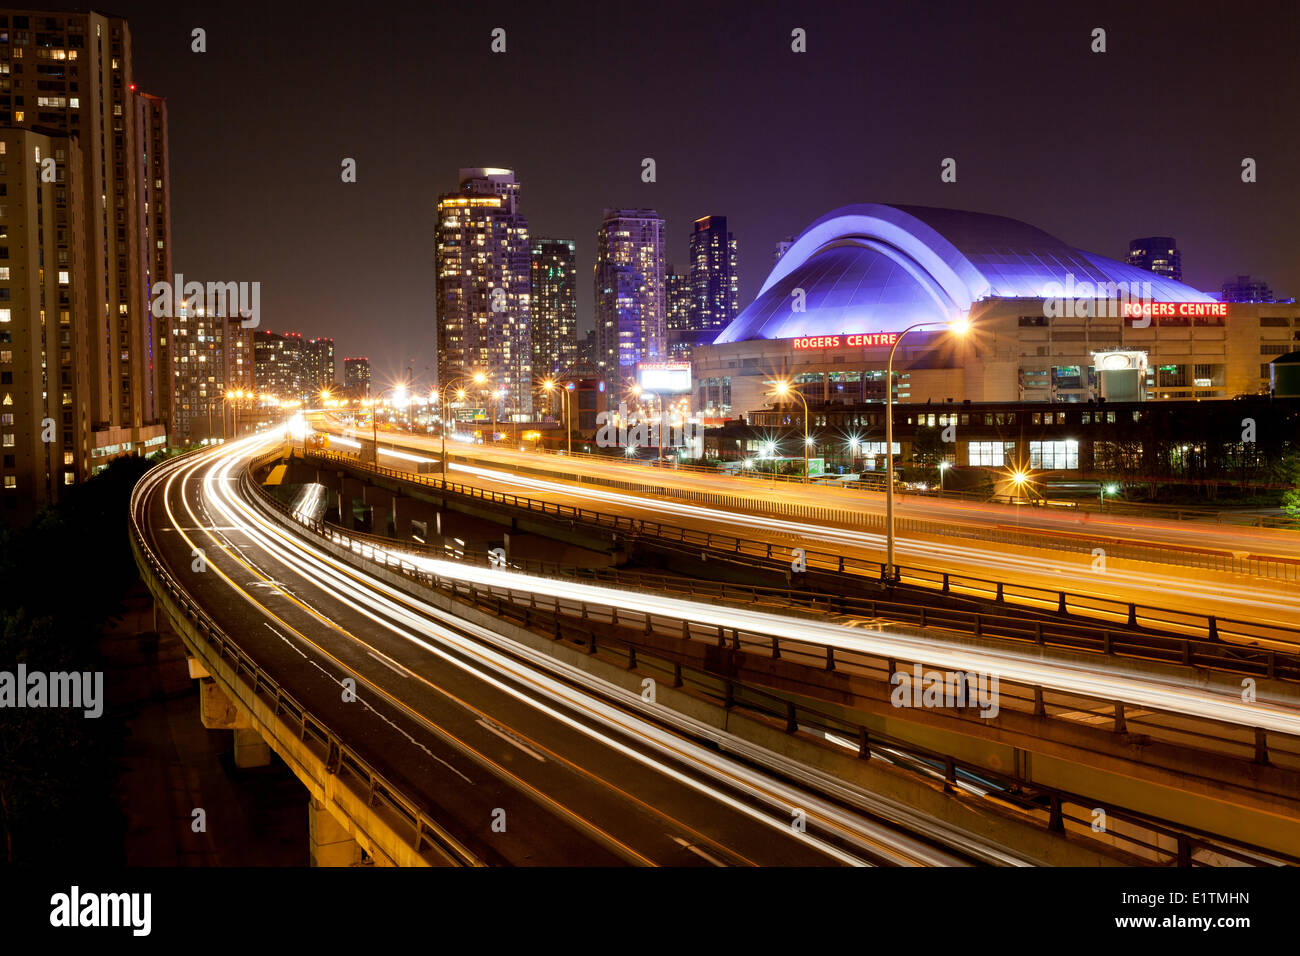 Evening view the Gardiner Expressway the Rogers Centre (formerly called the Skydome) lit with purple lights in downtown Toronto - Stock Image